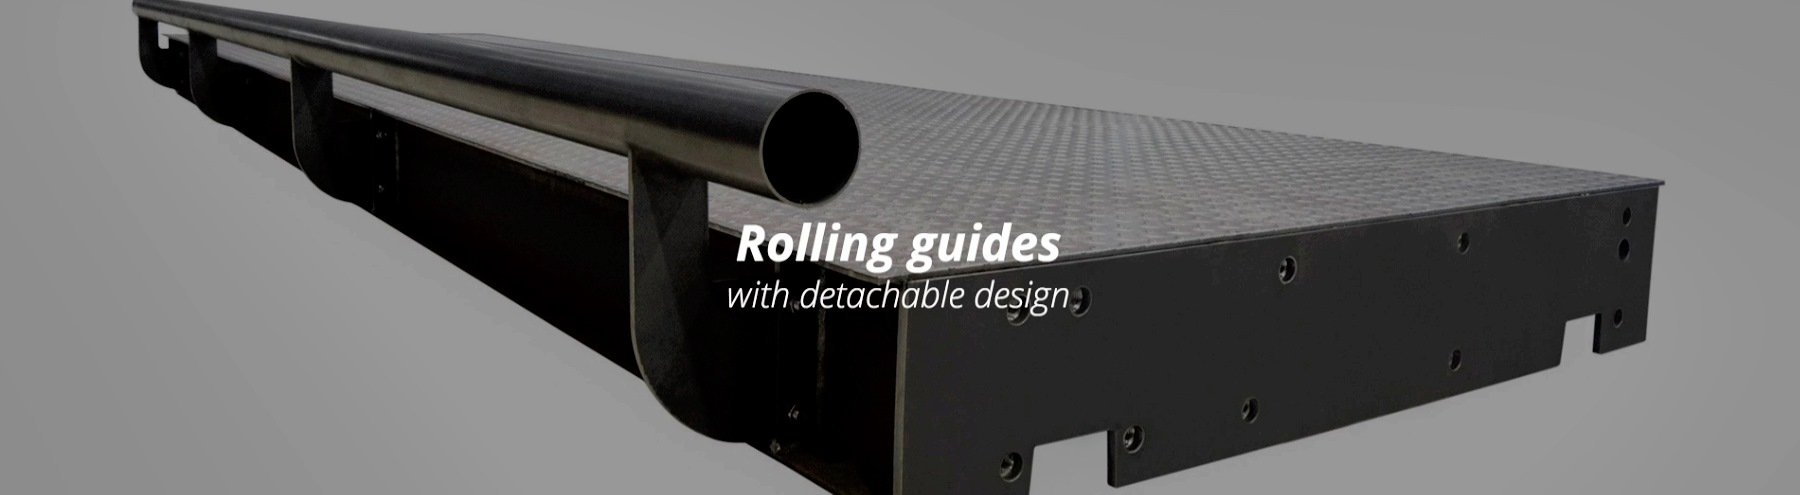 ROLLING GUIDES HEADER-a